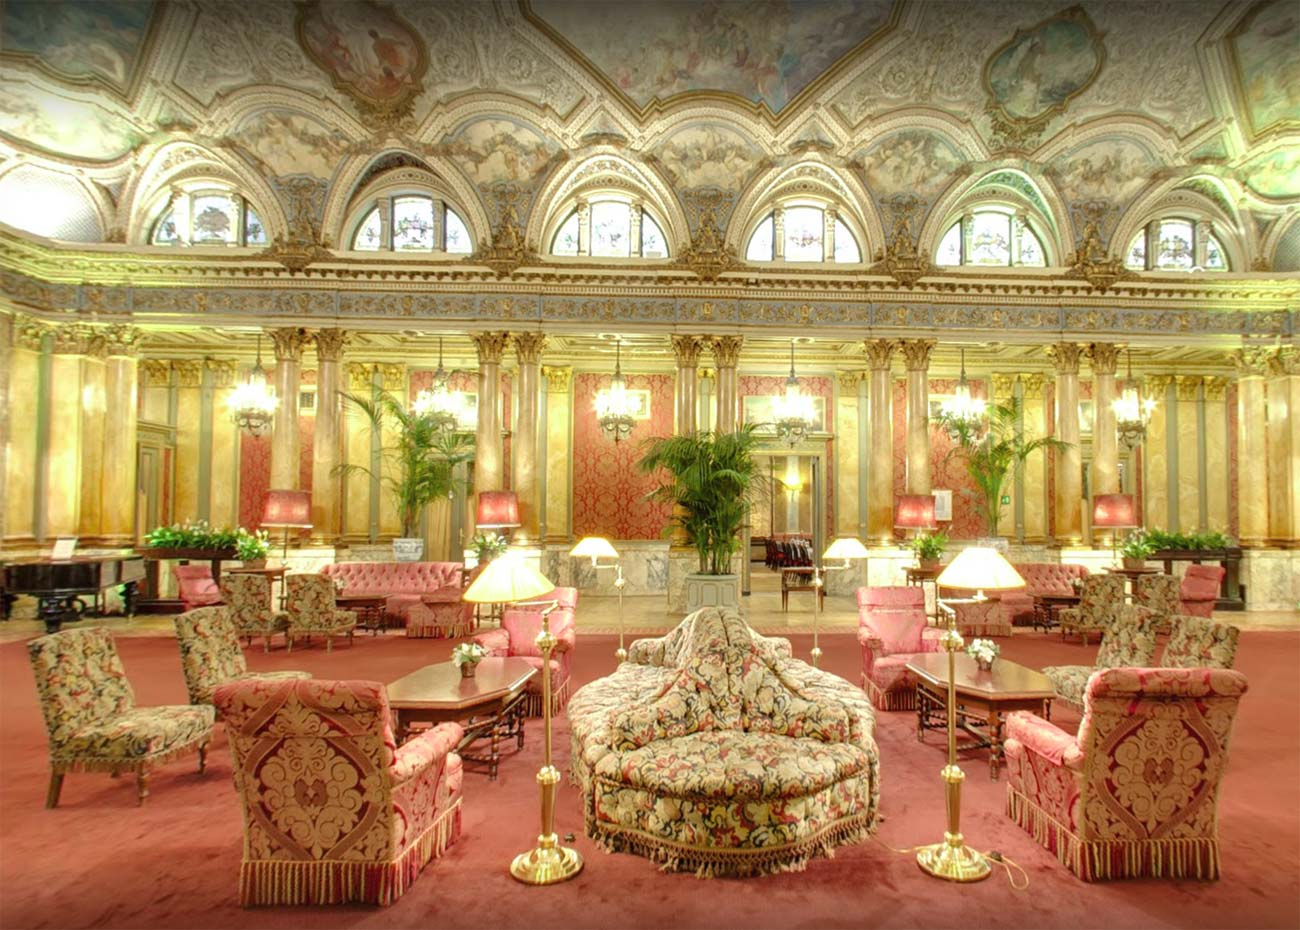 The Salone Delle Feste, a ballroom at Rome's five-star Grand Plaza Hotel. Photo from Google Maps